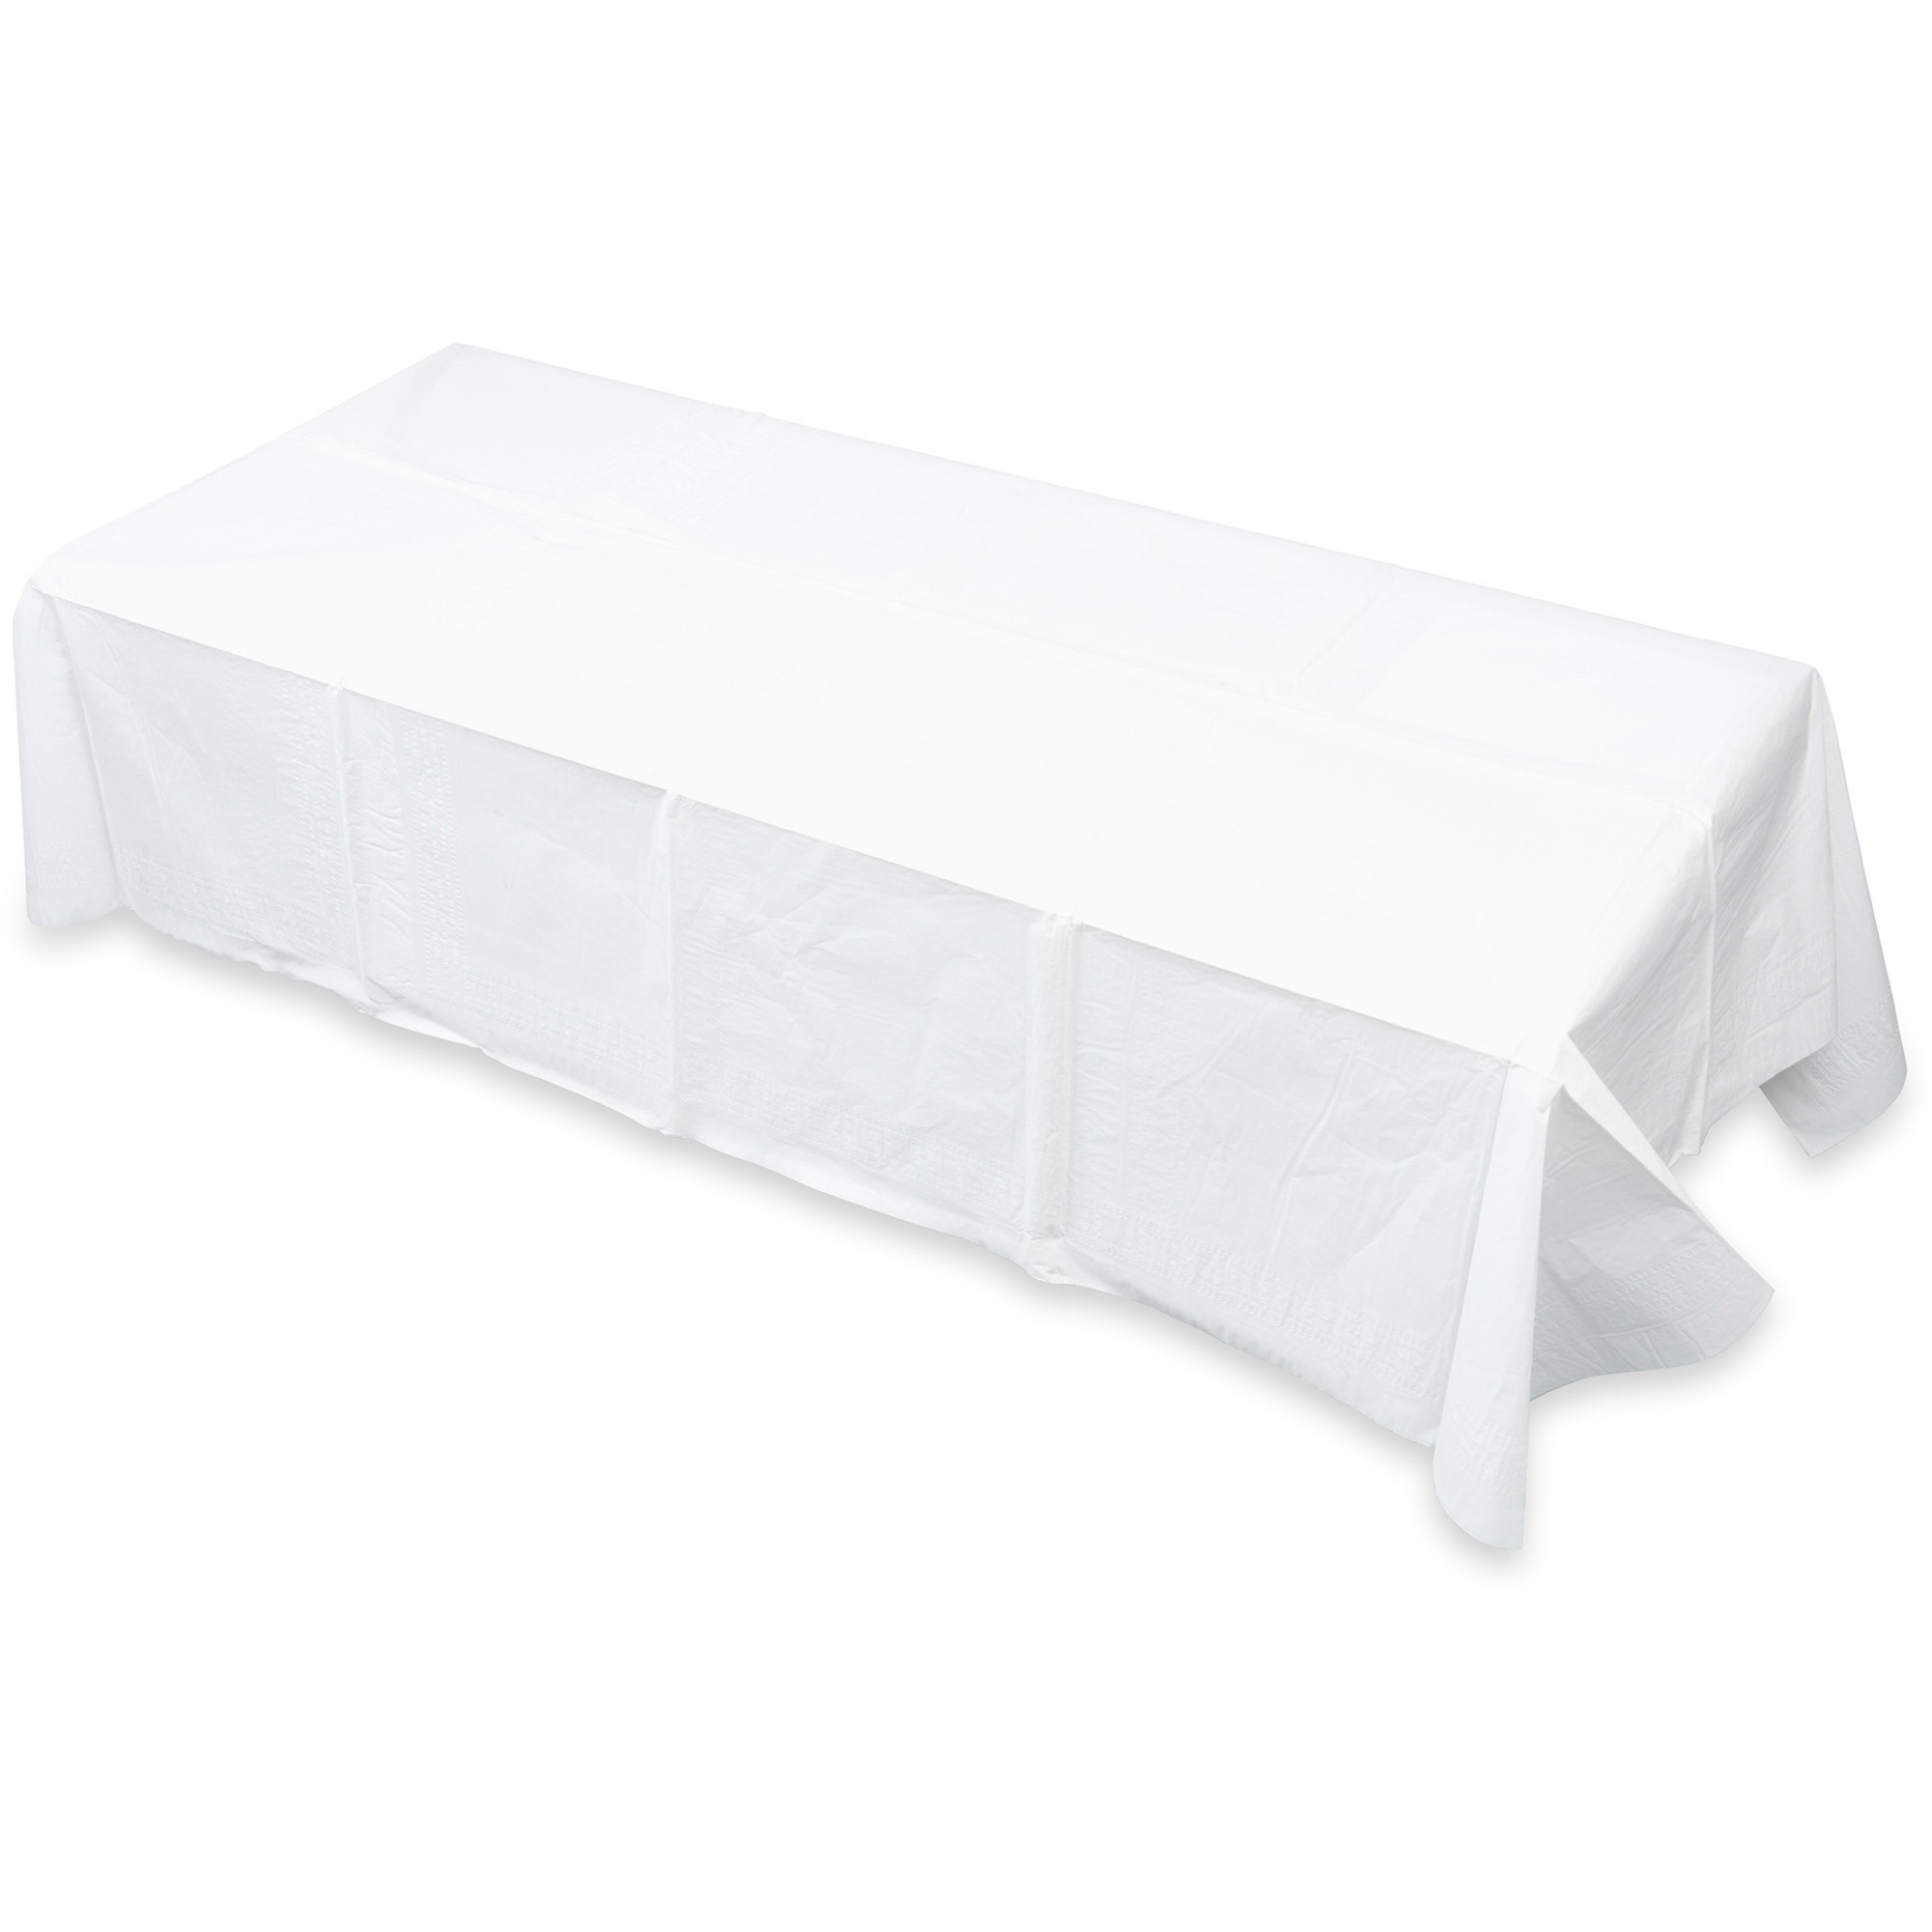 your chair covers inc promo code slip covered chairs dining room tatco white paper rectangular tablecovers tco31108